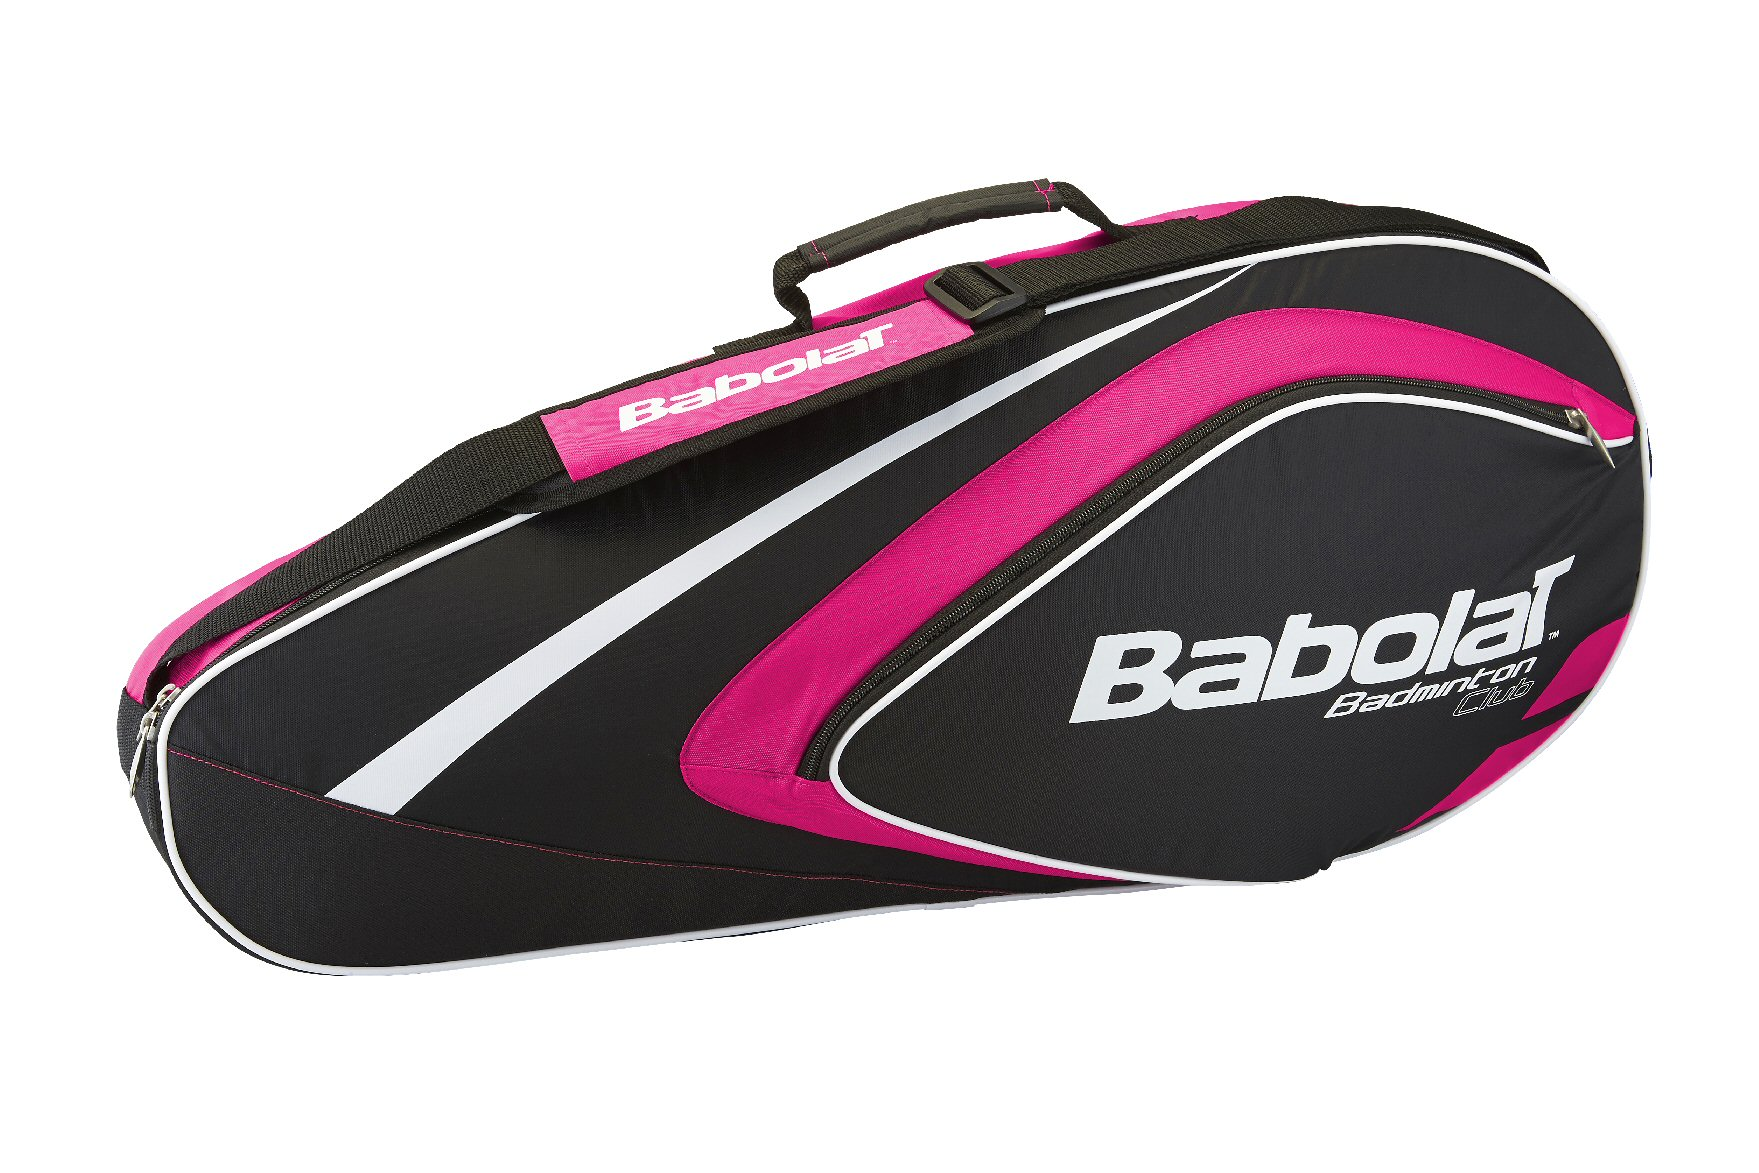 Babolat Badminton Club Line Racket Holder X4 Pink 2016